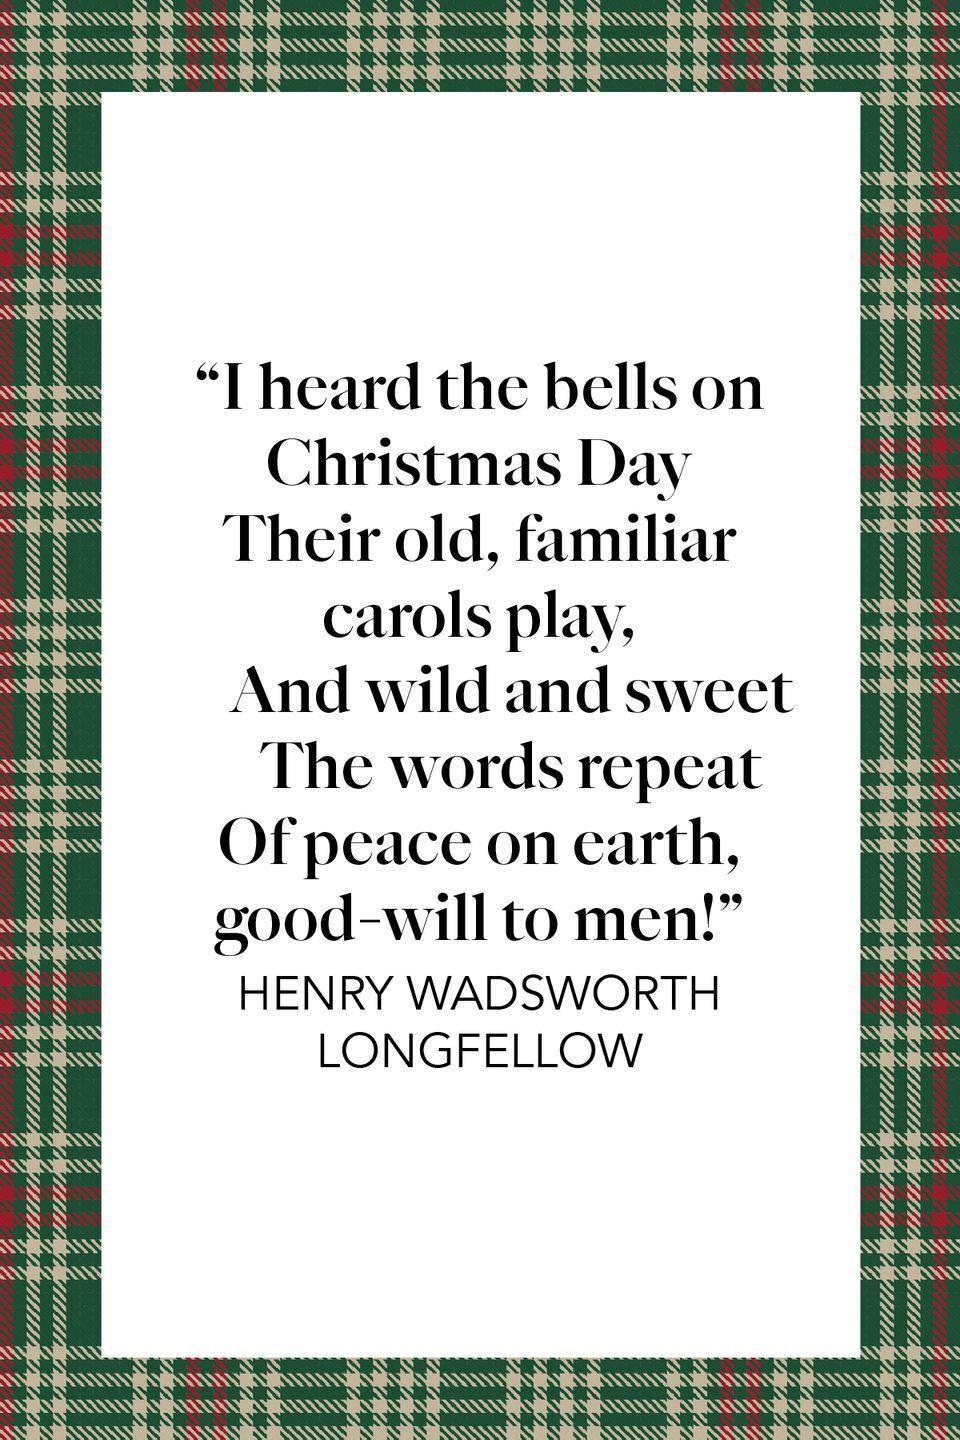 "<p>In another poem entitled ""<a href=""https://poets.org/poem/christmas-bells"" rel=""nofollow noopener"" target=""_blank"" data-ylk=""slk:Christmas Bells"" class=""link rapid-noclick-resp"">Christmas Bells</a>,"" Longfellow wrote ""I heard the bells on Christmas Day / Their old, familiar carols play, / And wild and sweet / The words repeat / Of peace of earth, good-will to men!""</p>"